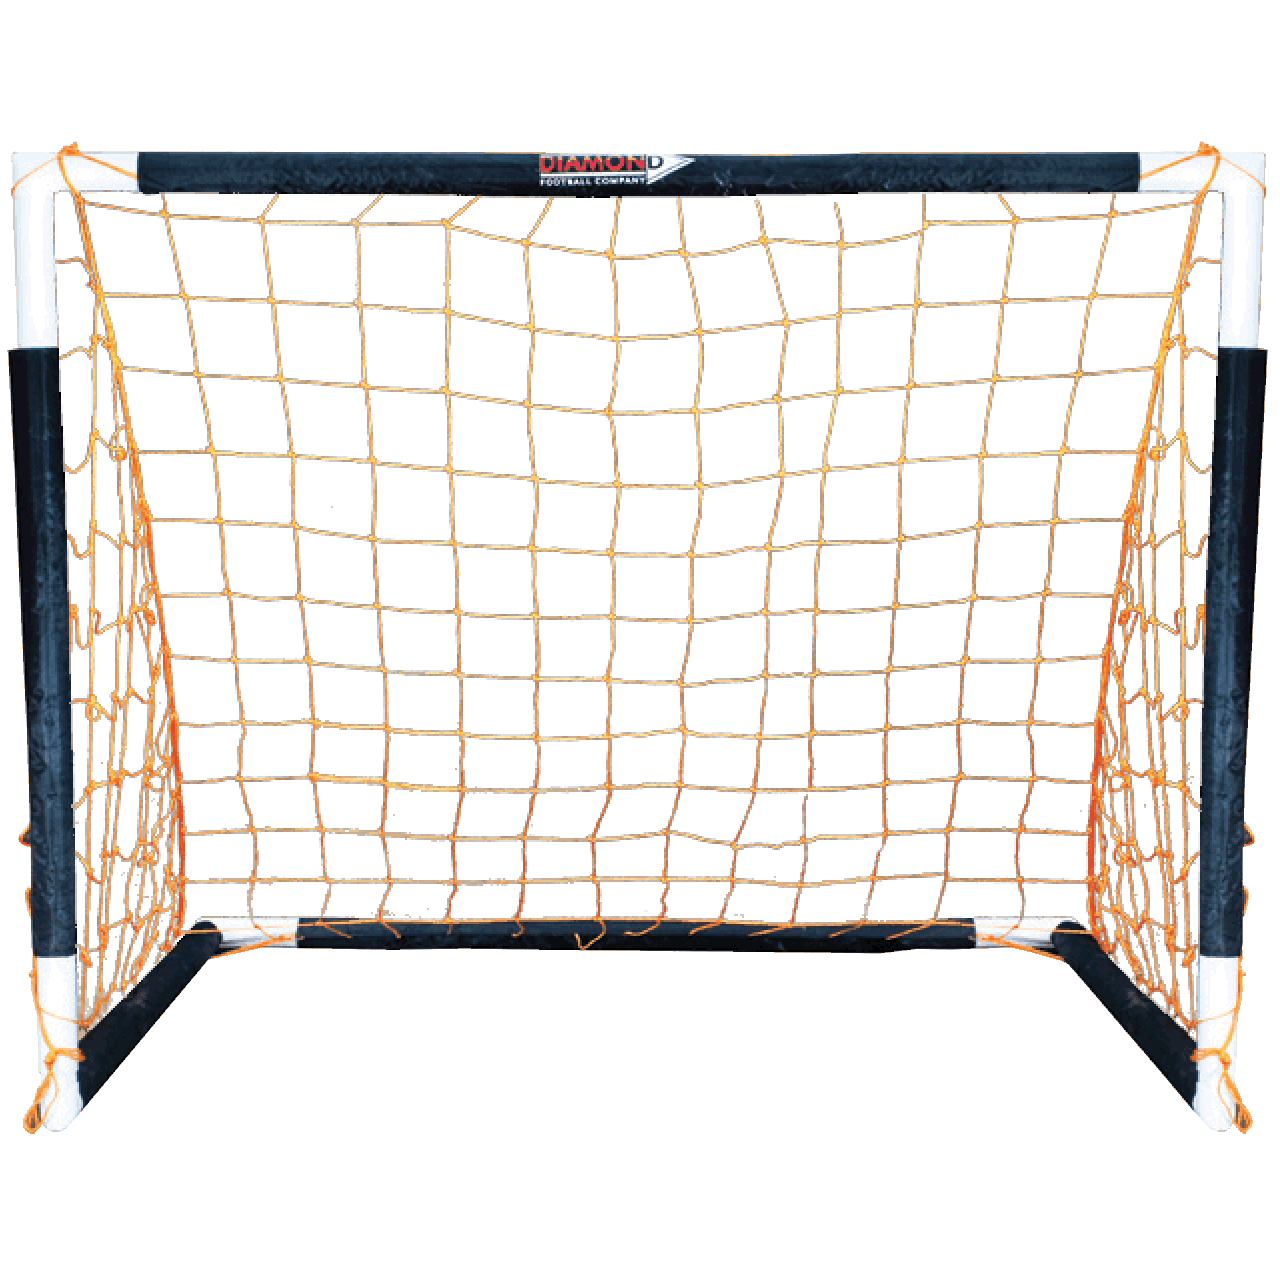 Coaching Goals   Football Training Equipment and Accessories